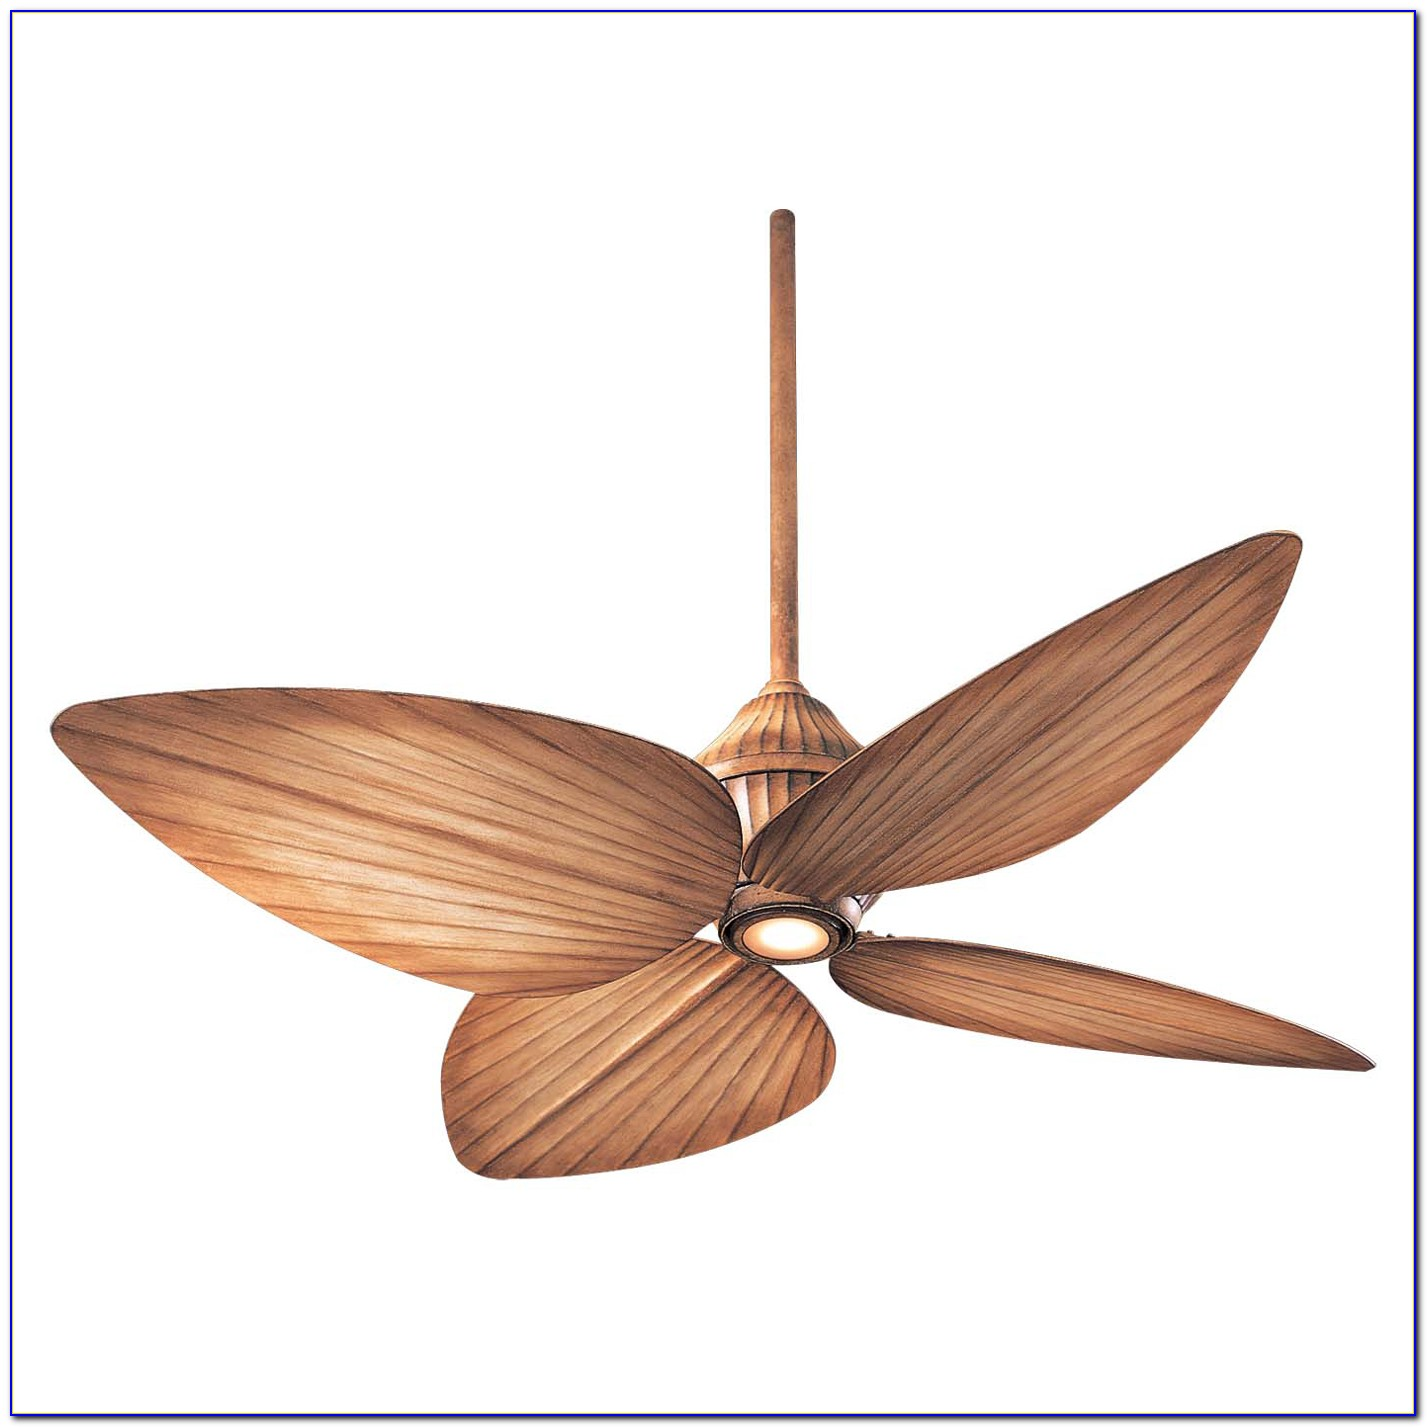 Minka Aire F803 Artemis 58 Inch Ceiling Fan With Light Kit